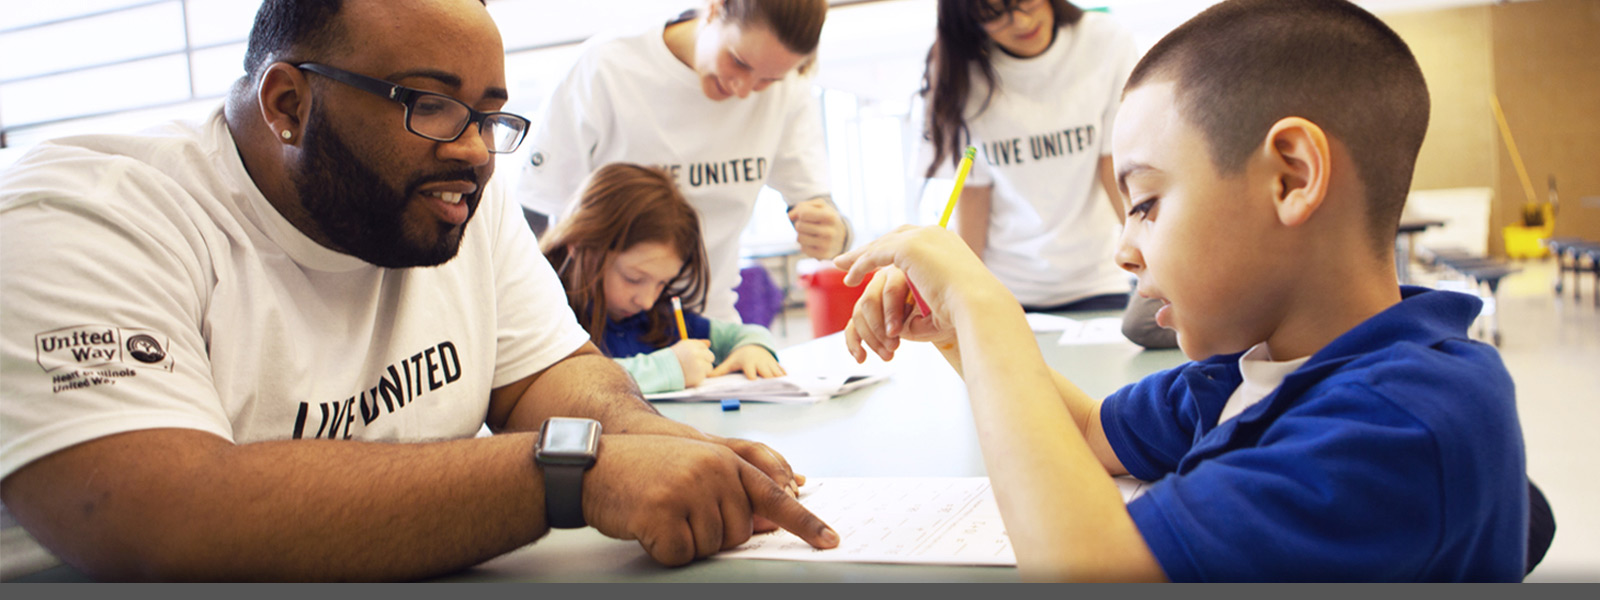 The Heart of Illinois United Way - our work in education helps to ensure that our children are ready to succeed when they enter kindergarten and people of all ages are prepared for work, postsecondary education and life.